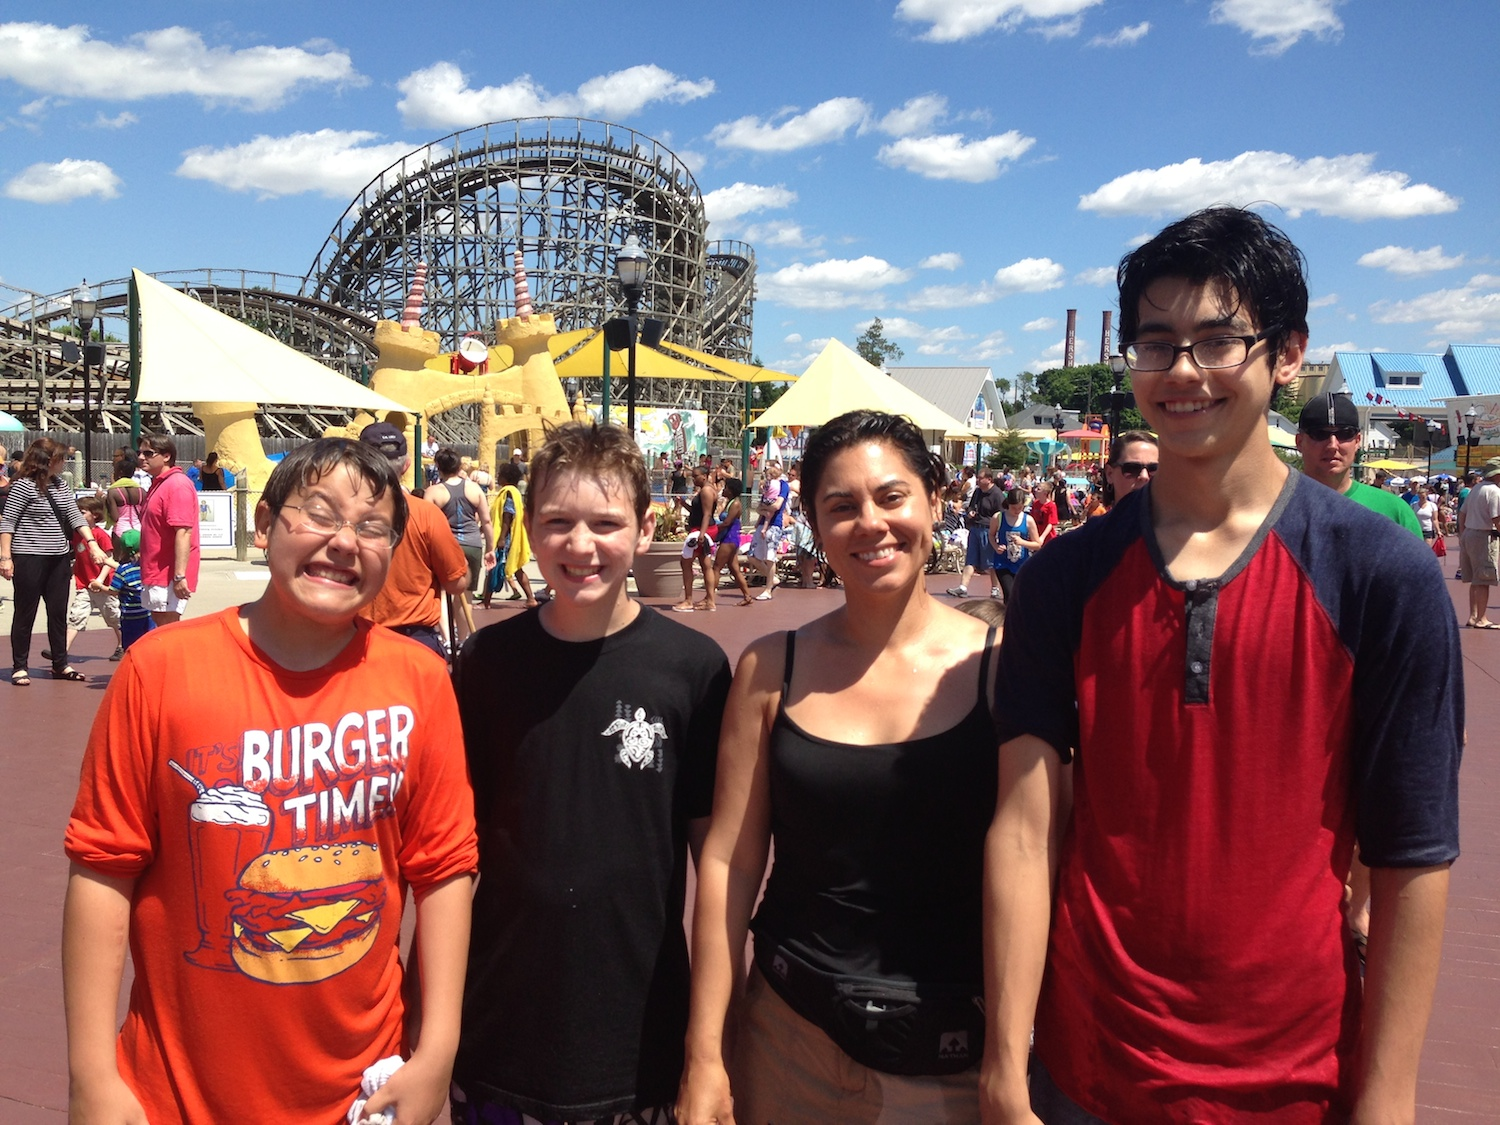 Truly and intensely soaked after riding Tidal Force at Hershey Park